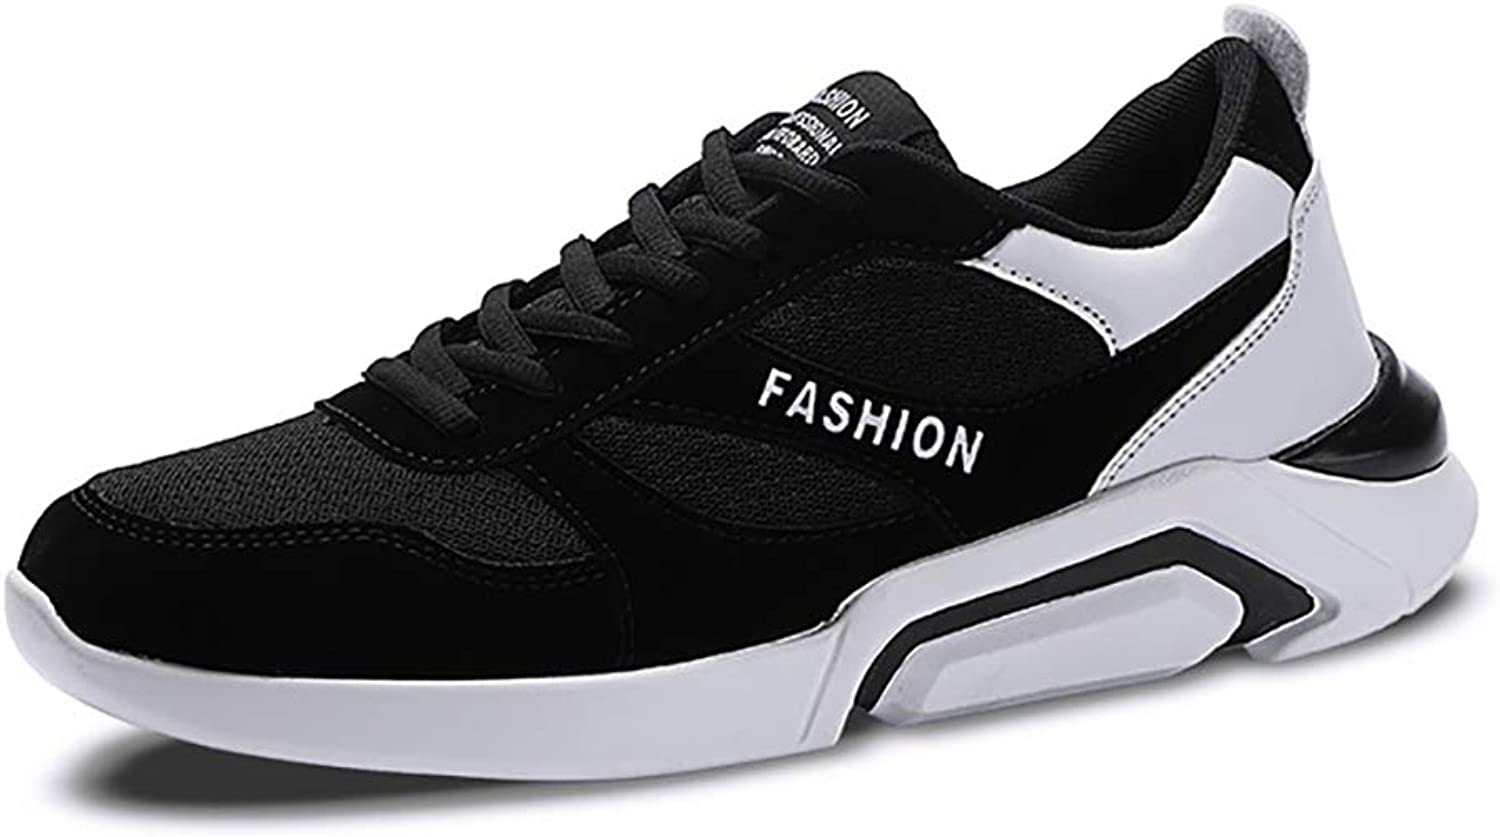 ZYFA Casual shoes Casual shoes mesh breathable lace-up shoes flat rubber soles wear running sneakers (color   B, Size   42)